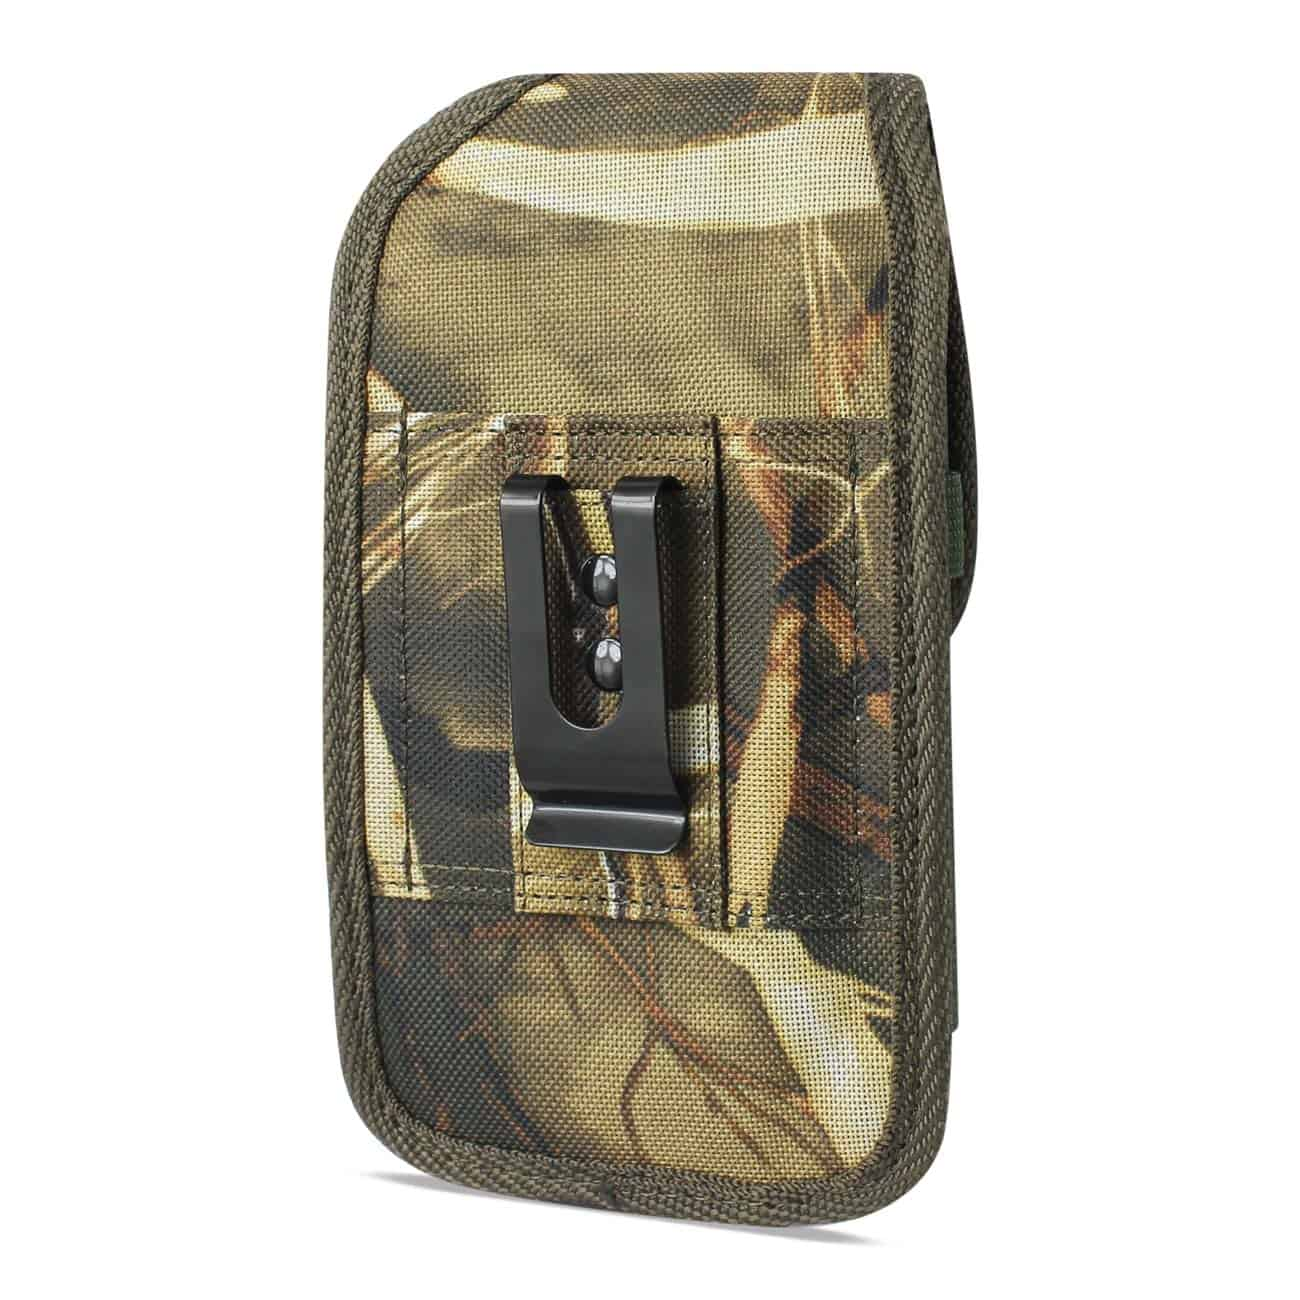 Vertical Rugged Pouch With Metal Belt Clip In Camouflage (5.3X2.7X0.7 Inches)